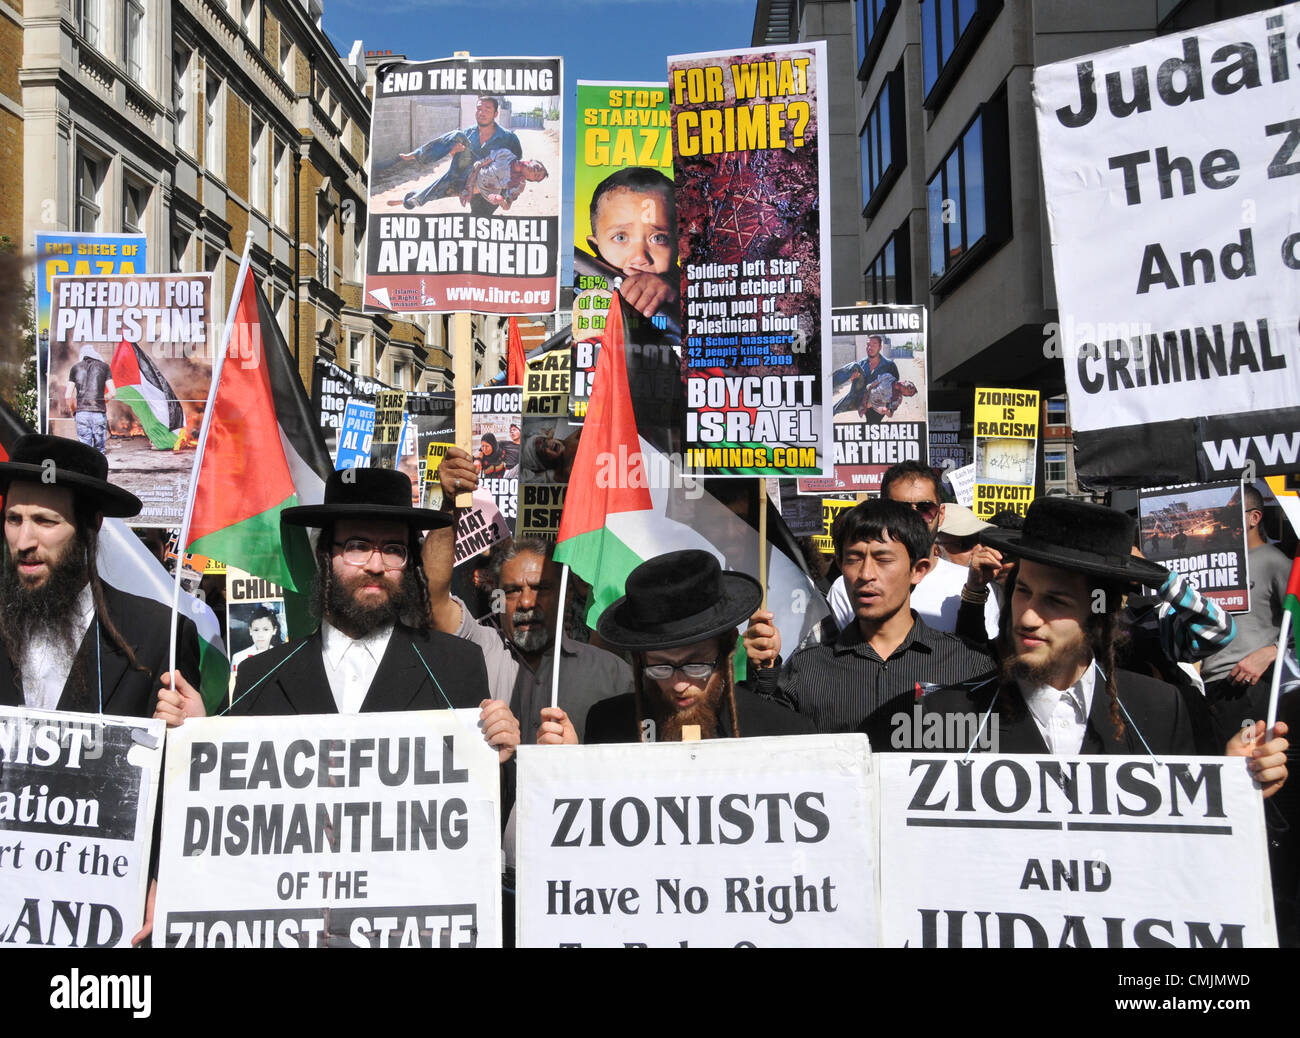 Portland Place, London, UK. 17th August 2012. Jewish men hold Palestinian flags on the AL-QUDS Day [Jerusalem Day] - Stock Image